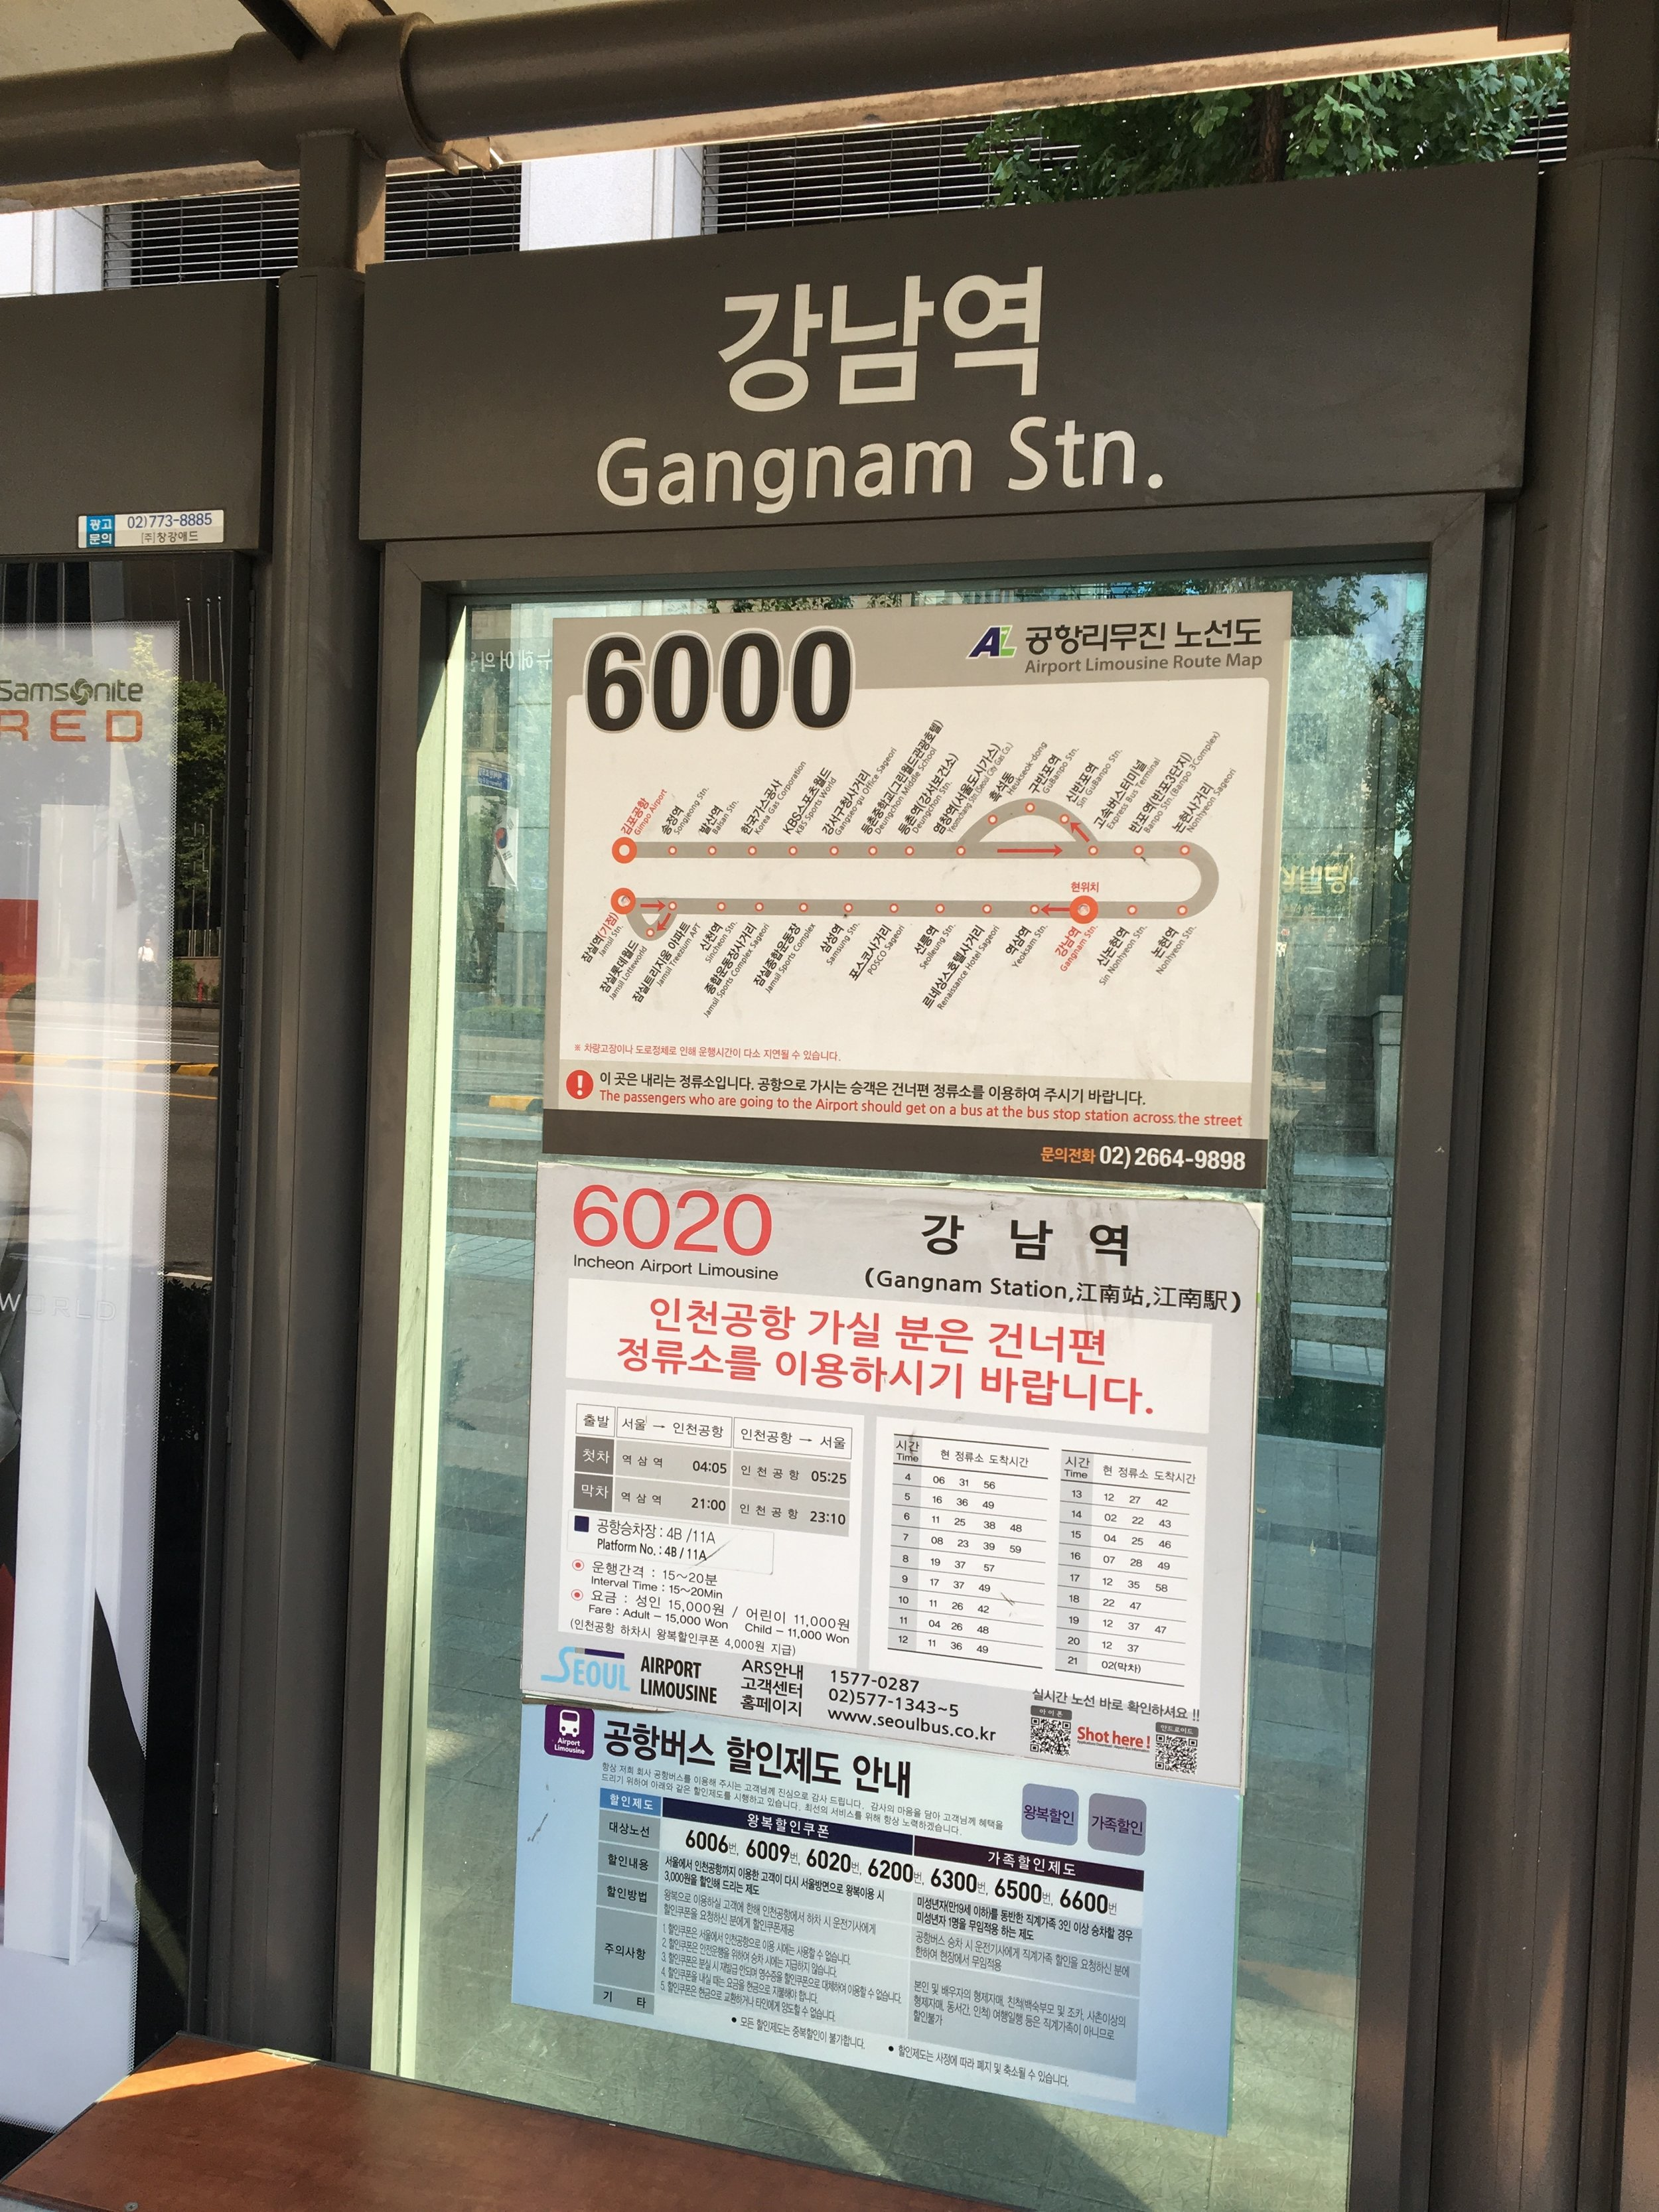 1. Please get off at gangnam station - It takes 90 mins from Inchoen airport to Gangnam station. Airport but 6020 would be the best way to reach to Mike House in Gangnam.